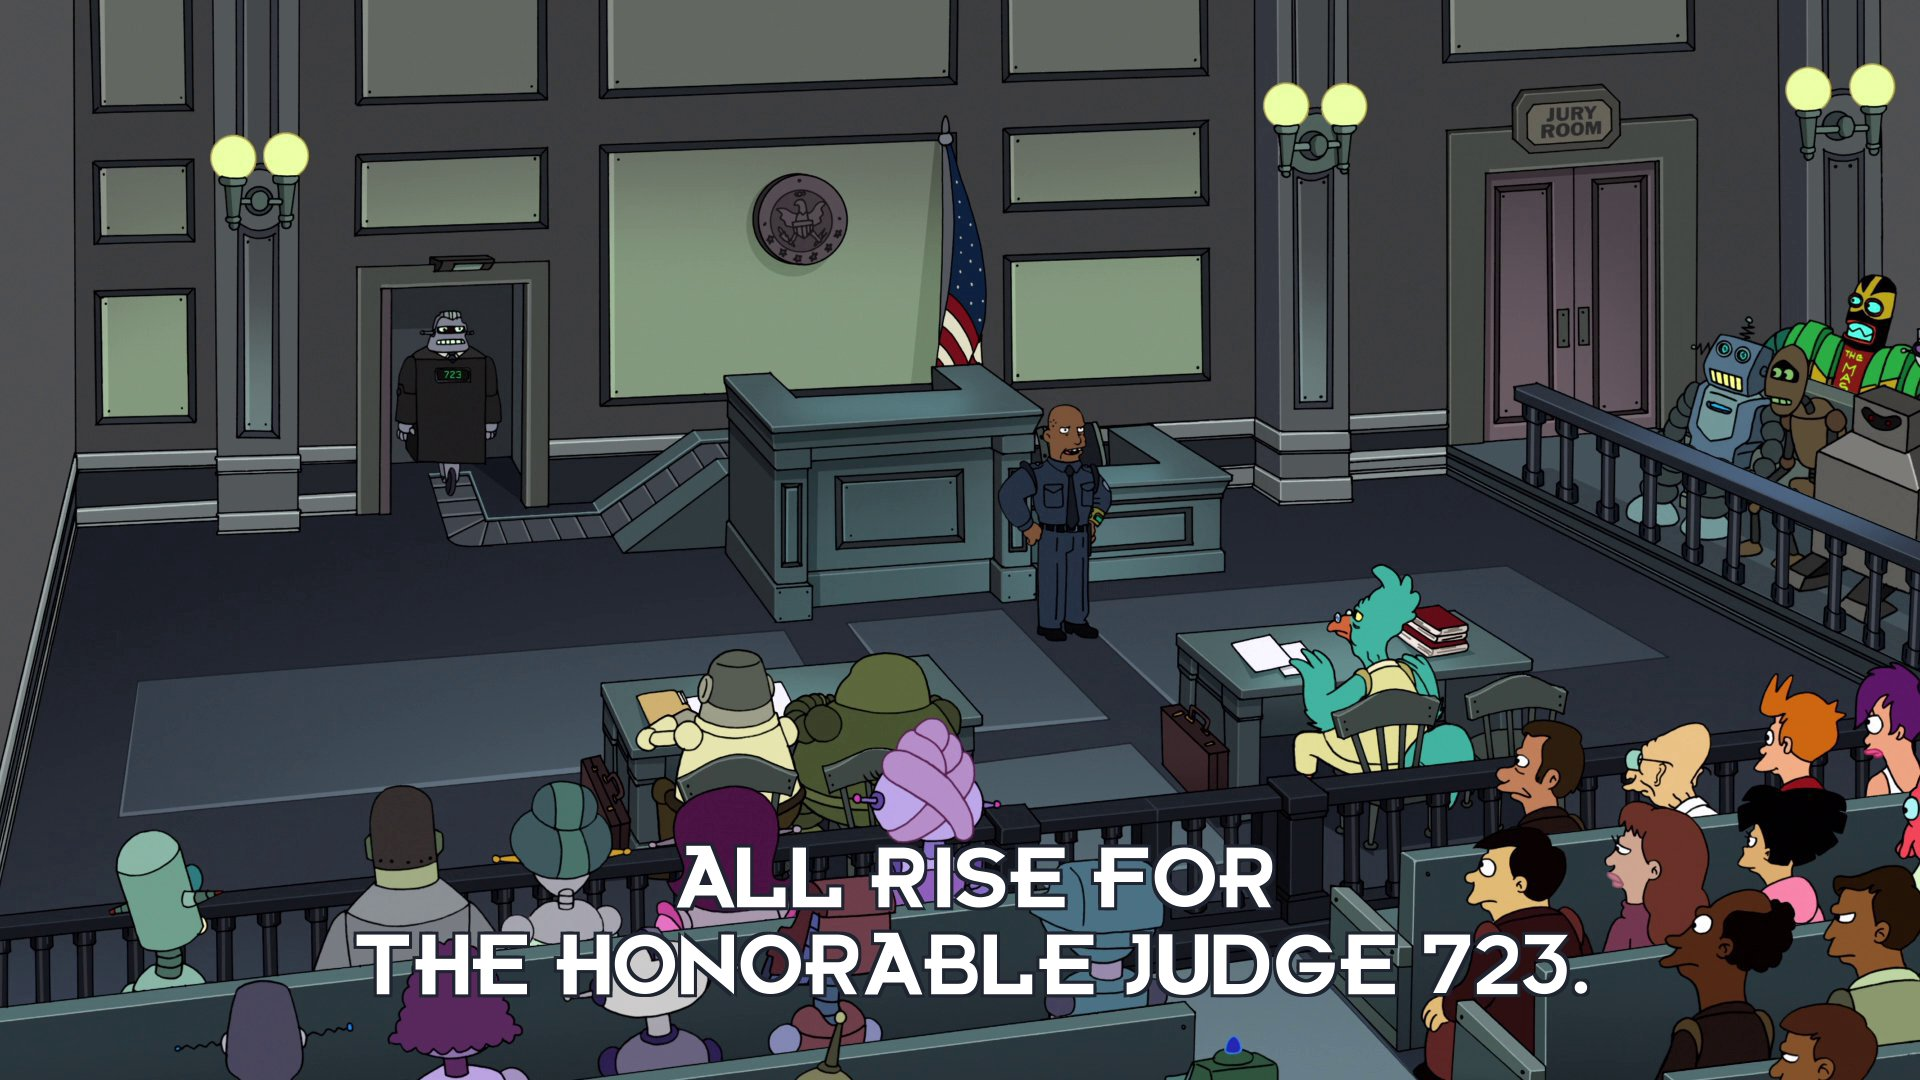 Bailiff: All rise for the honorable Judge 723.